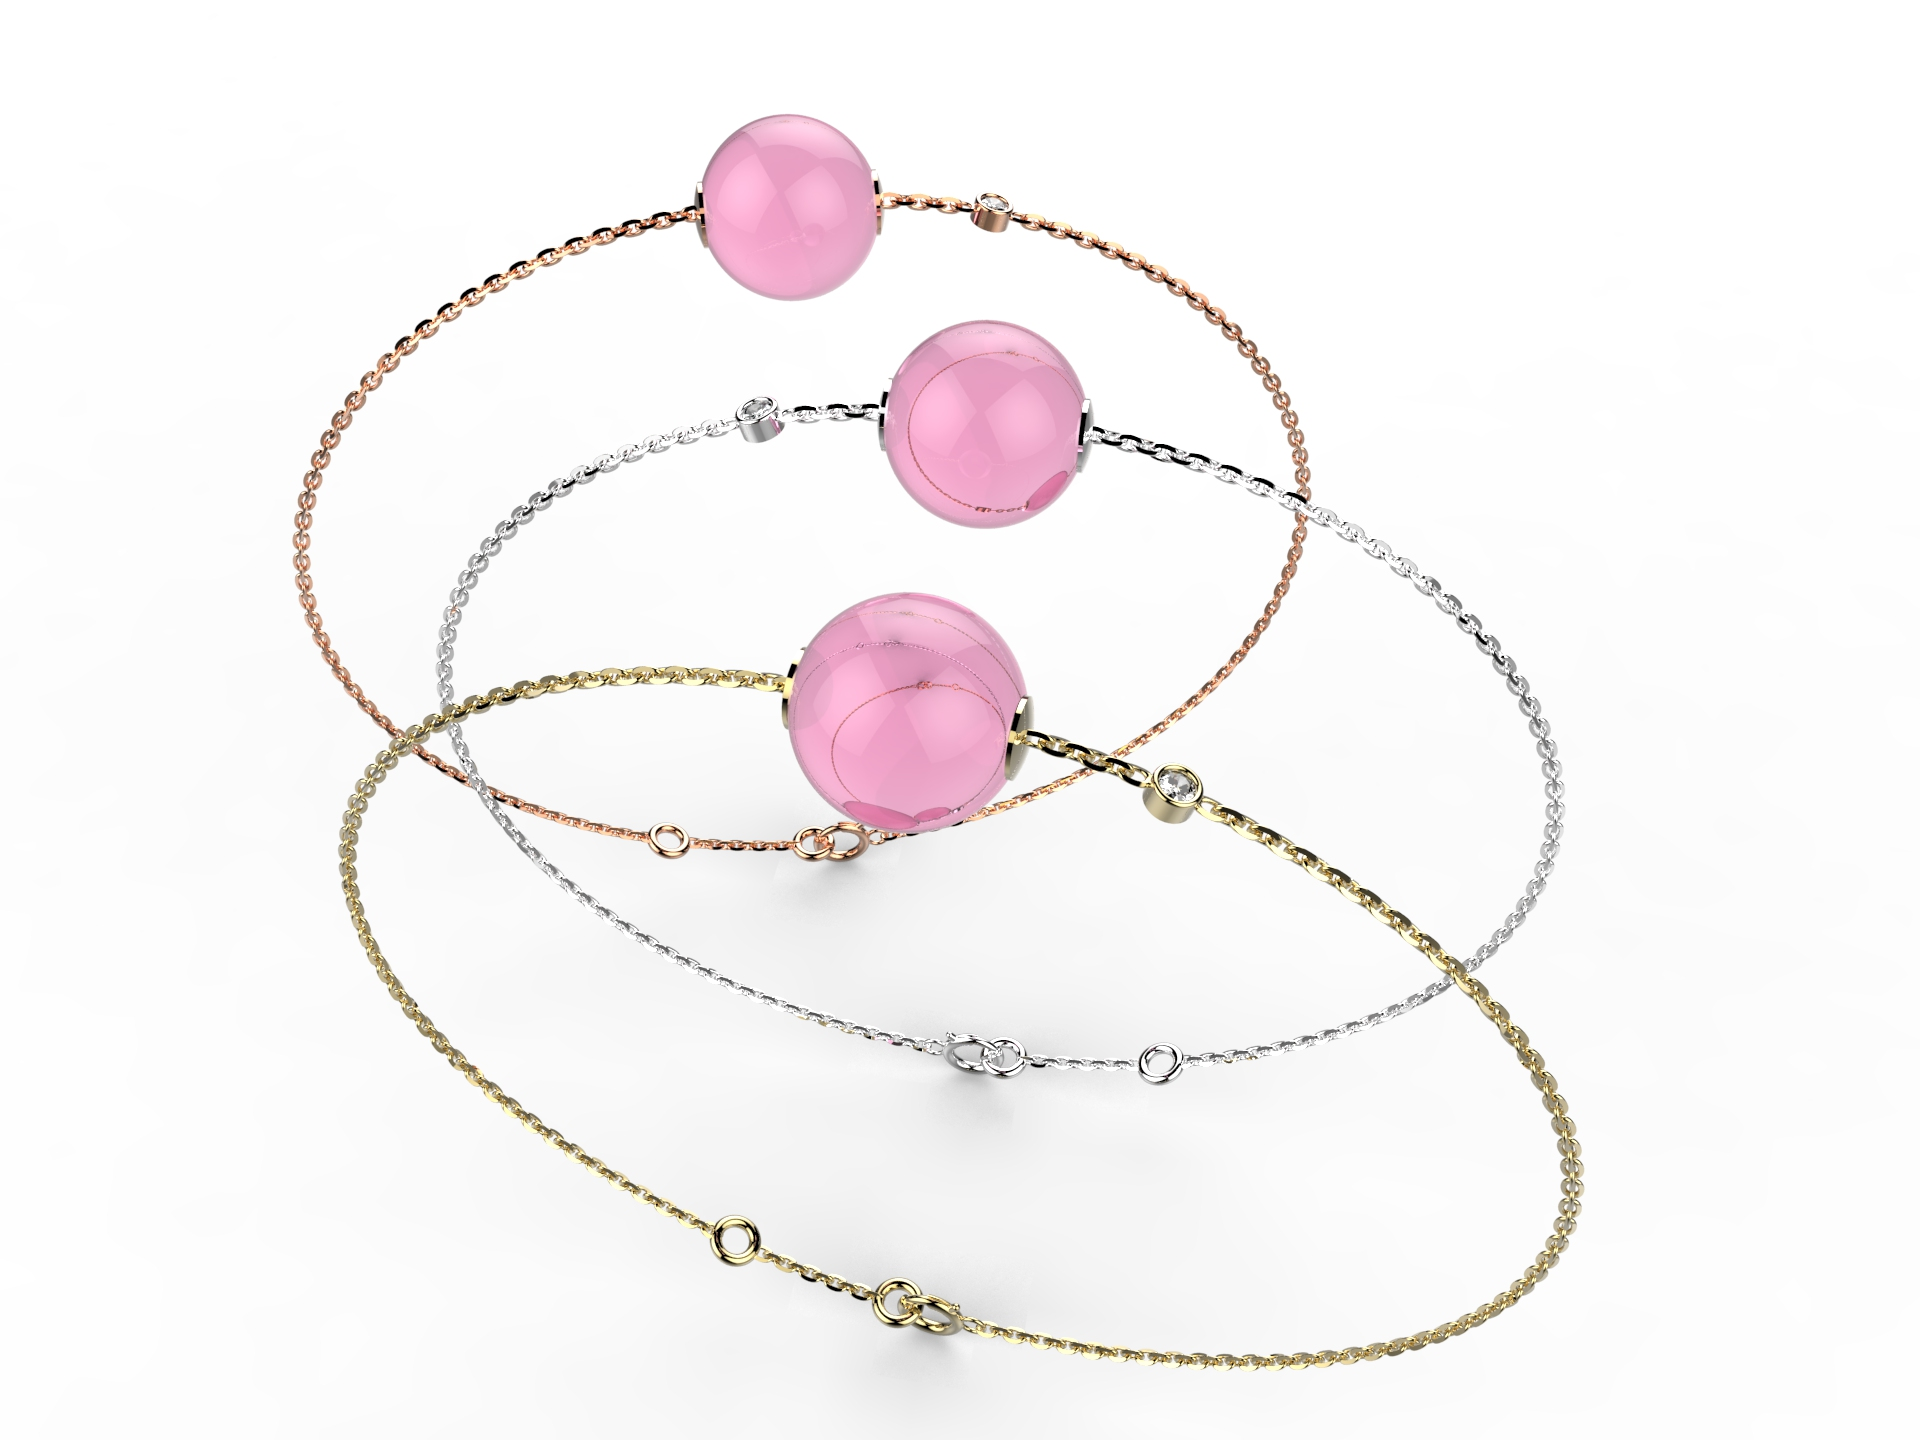 Bracelet or perle quartz rose 330 €